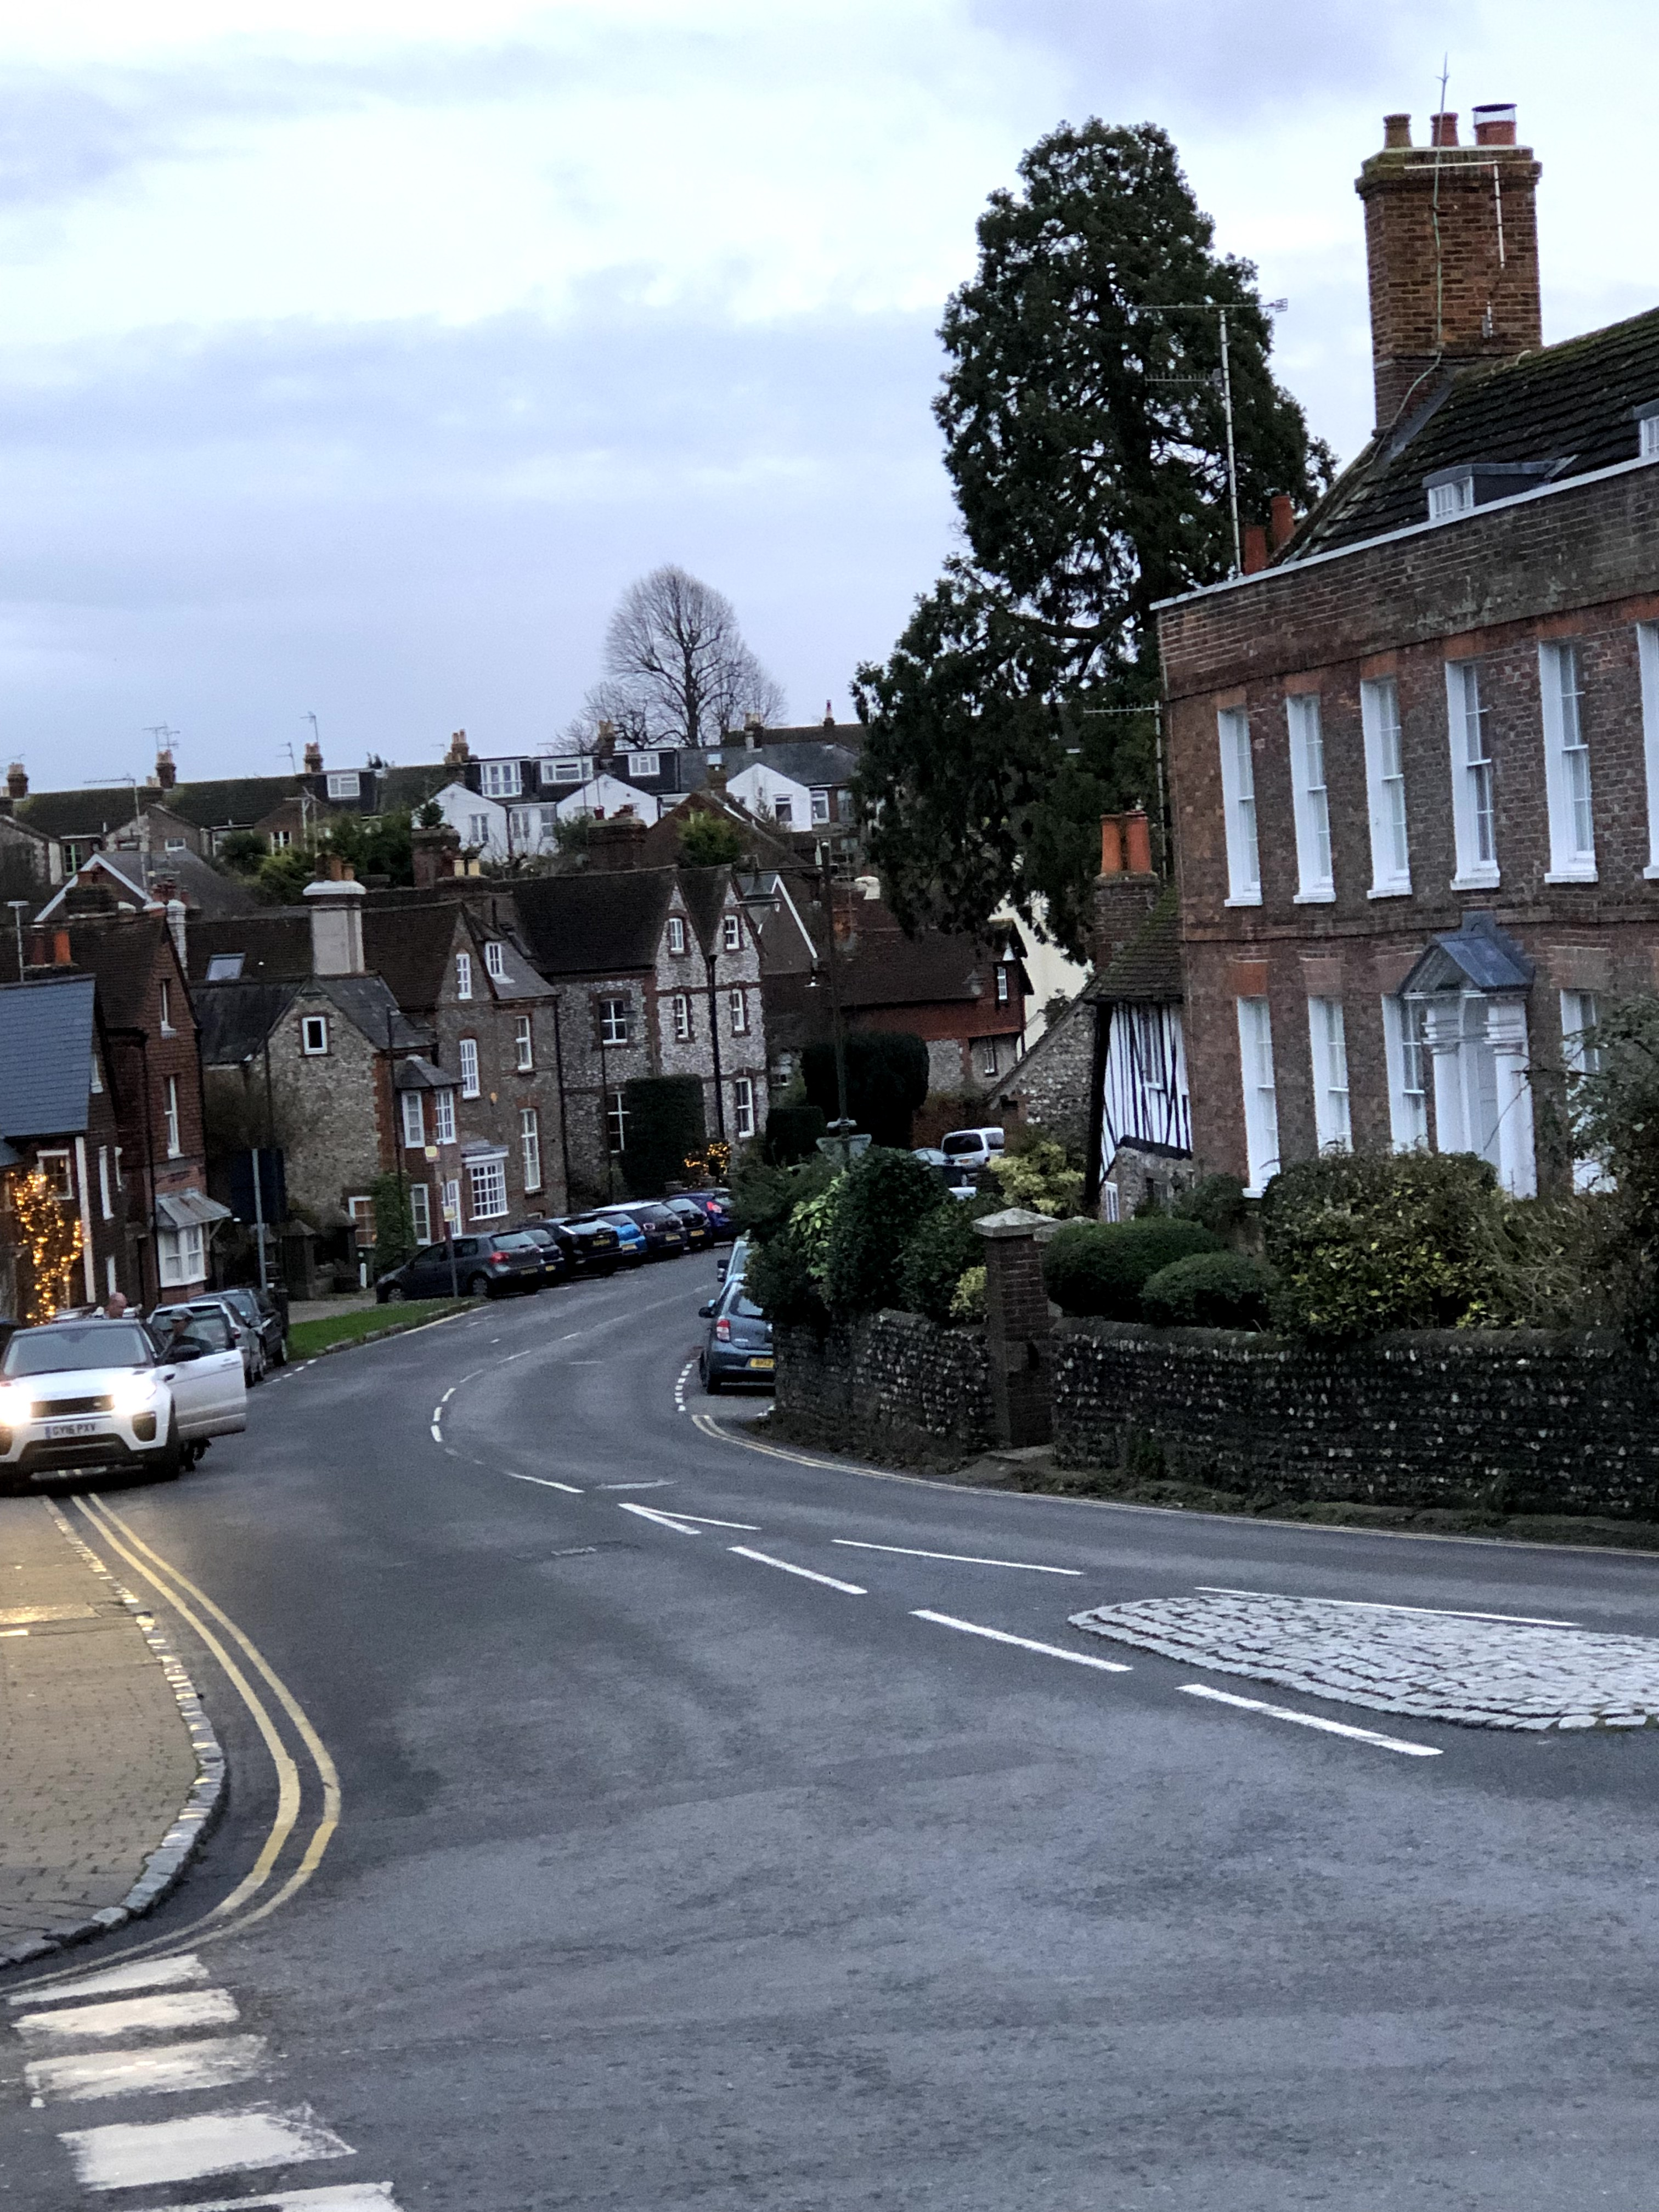 photo of buildings on a high street